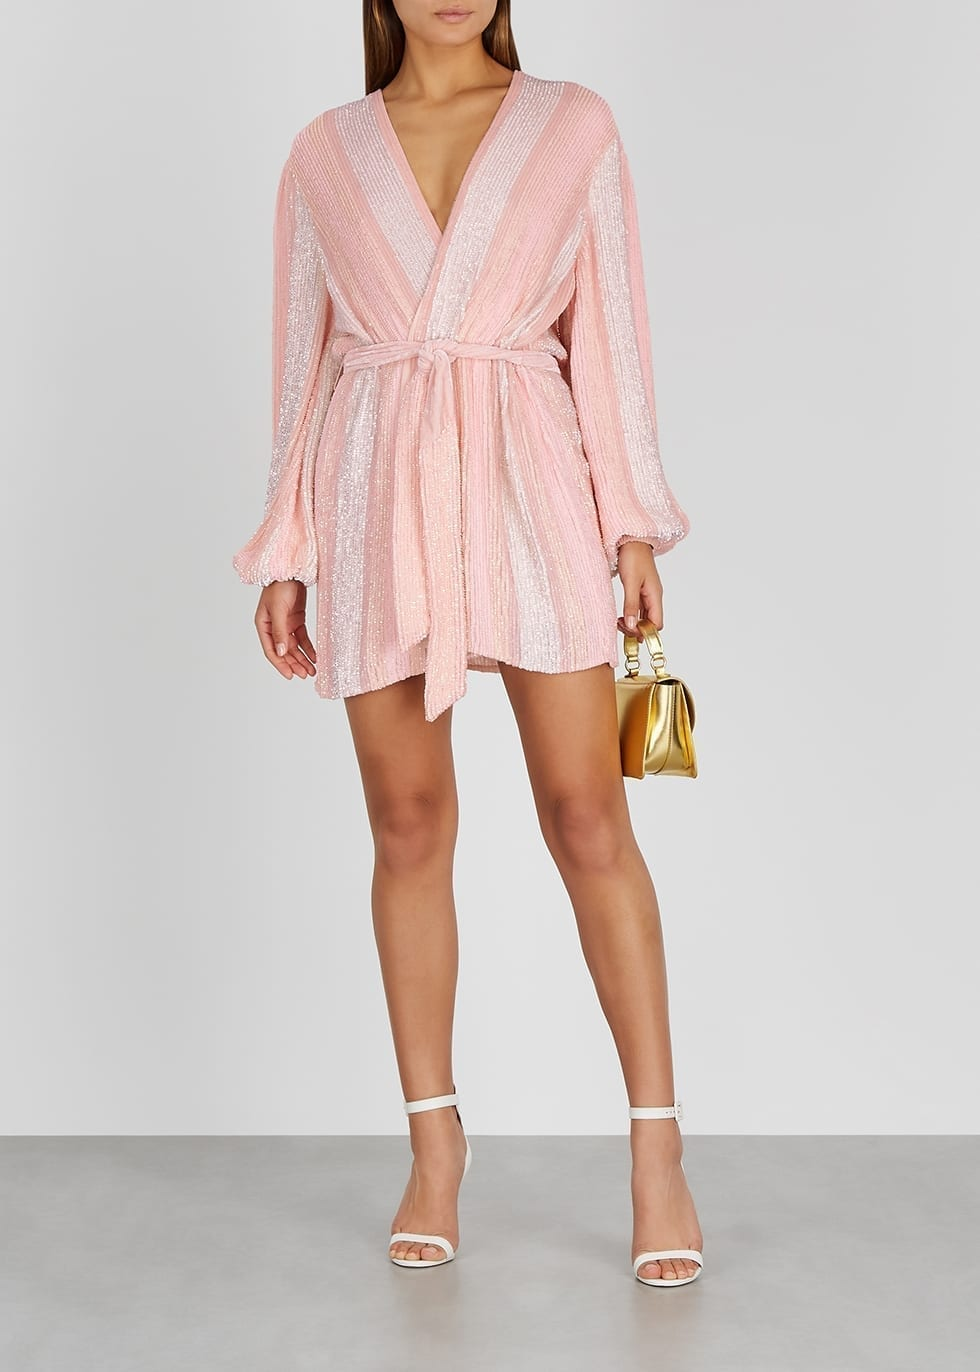 RETROFÊTE Gabrielle Pink Striped Sequin Mini Dress